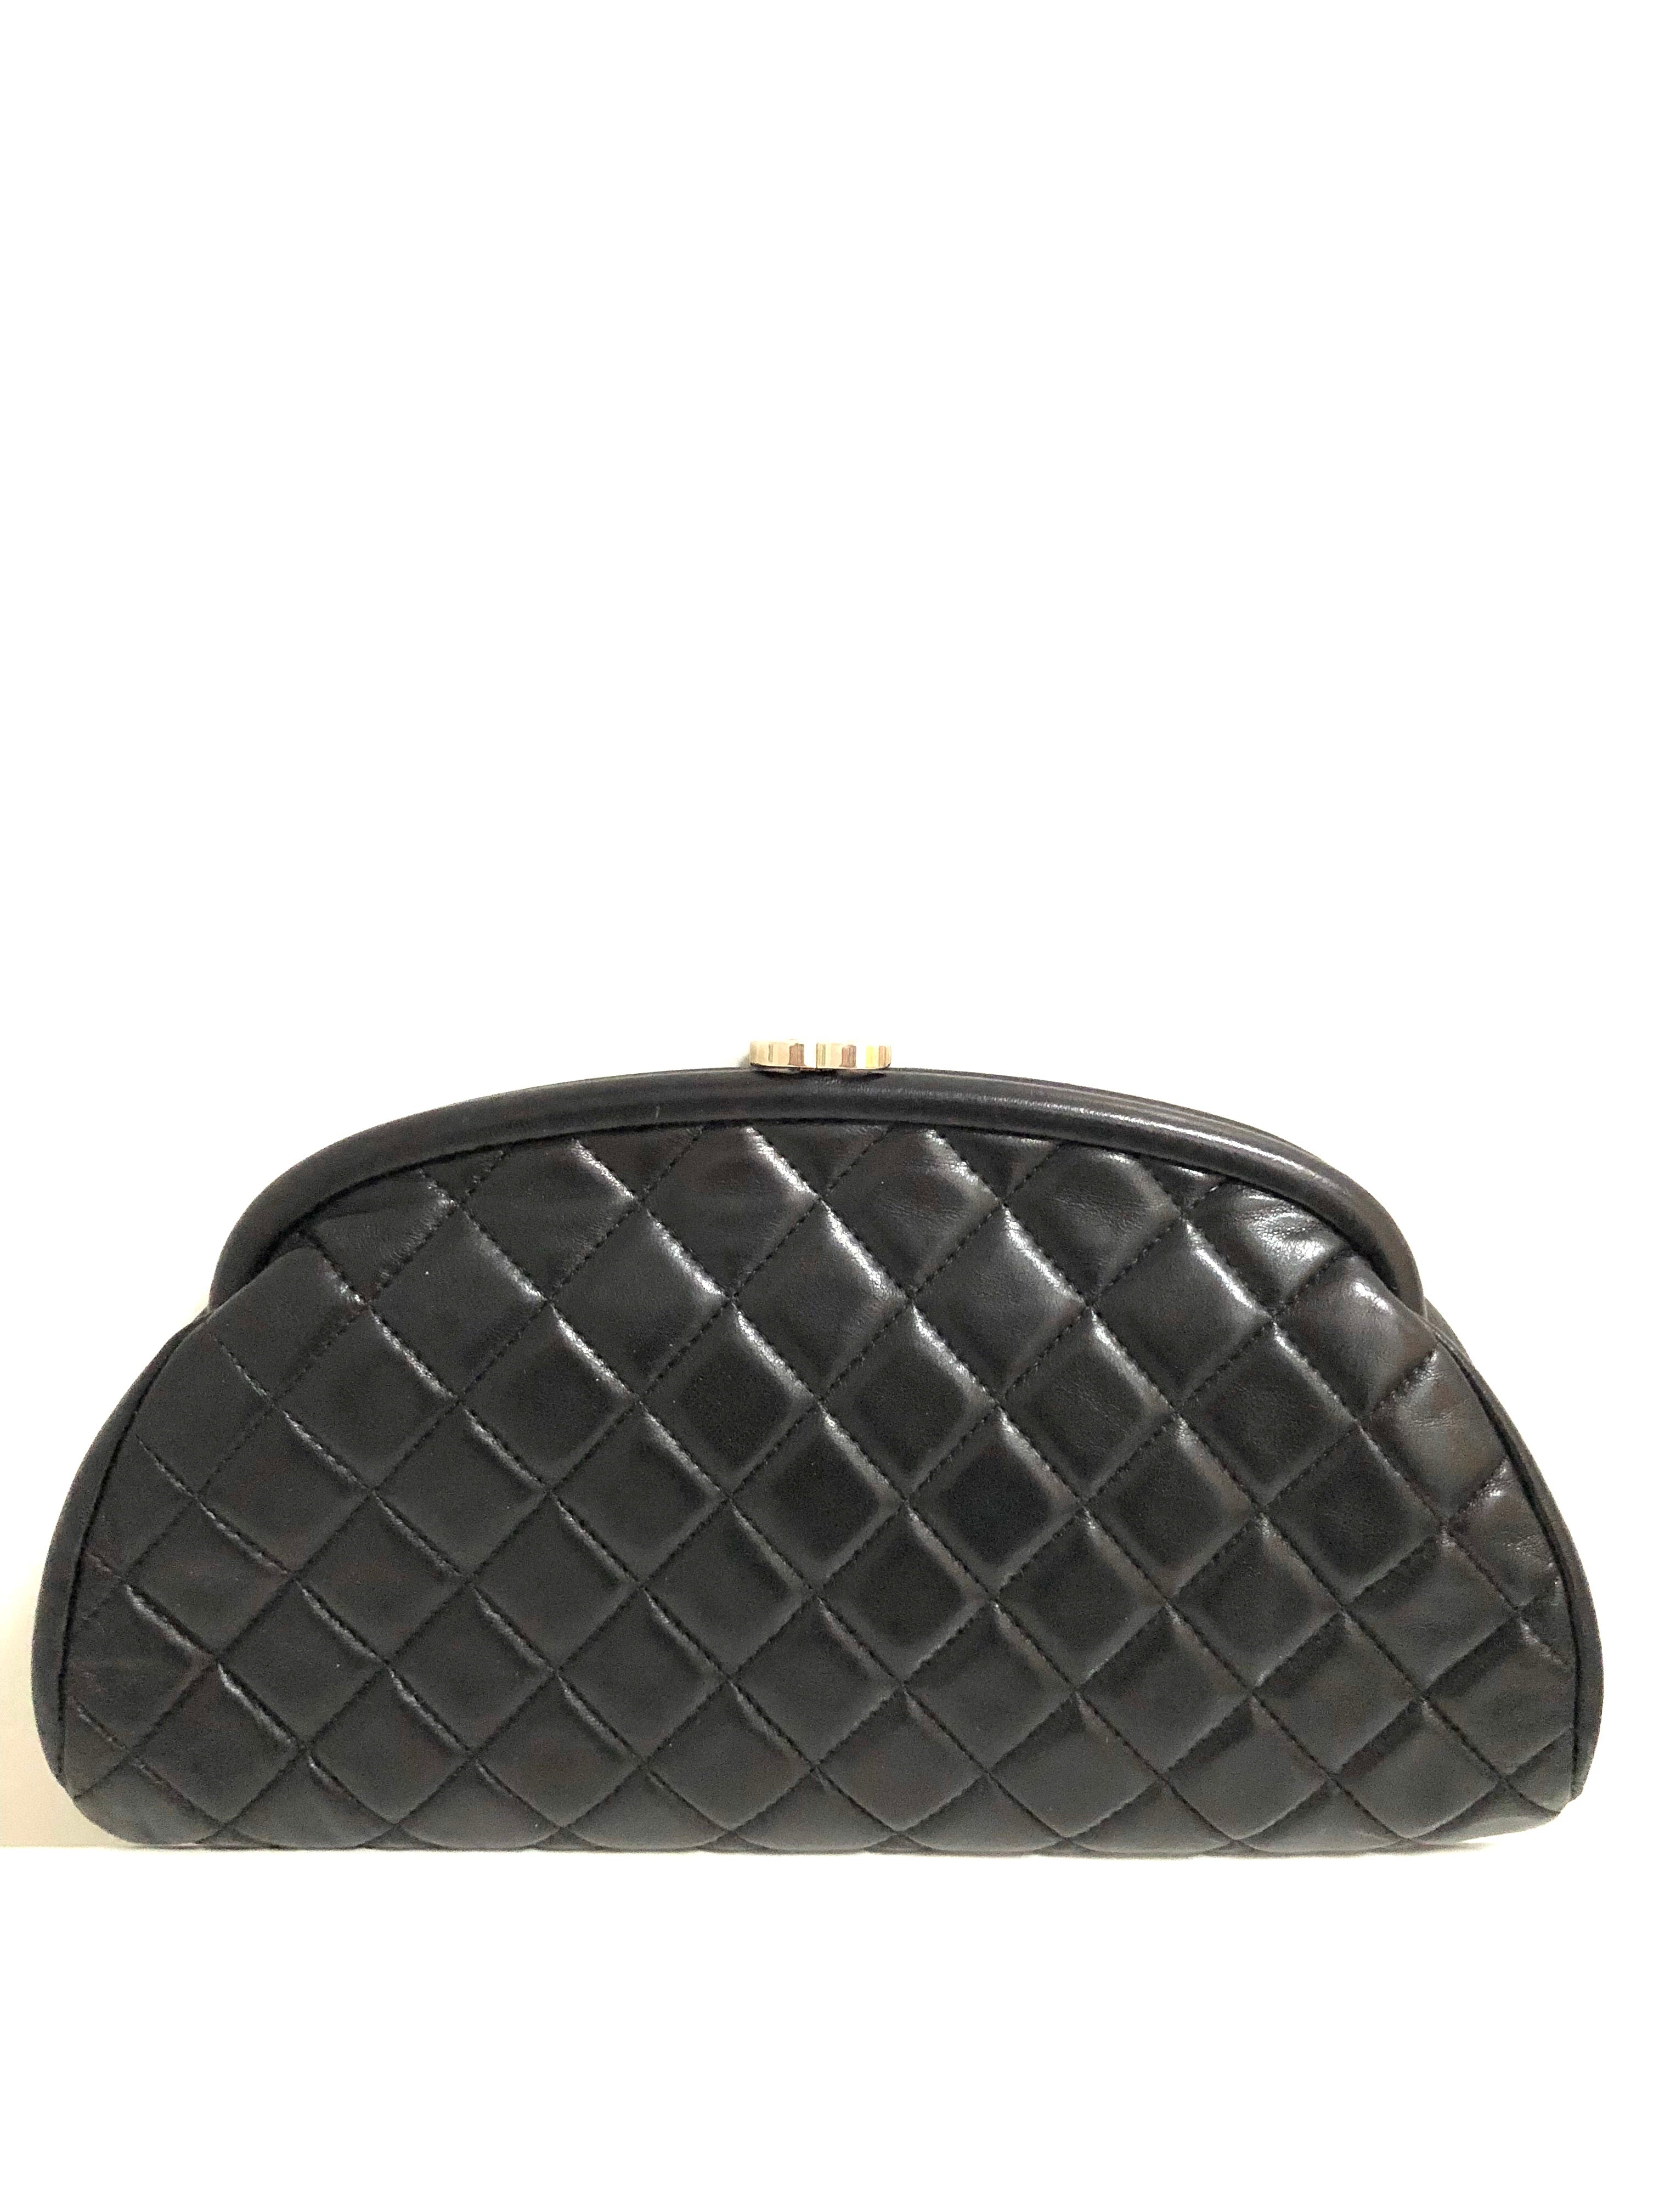 65b91d885629 Chanel Black Lambskin Leather Quilted Timeless Clutch with Silvertone –  Socialite Auctions